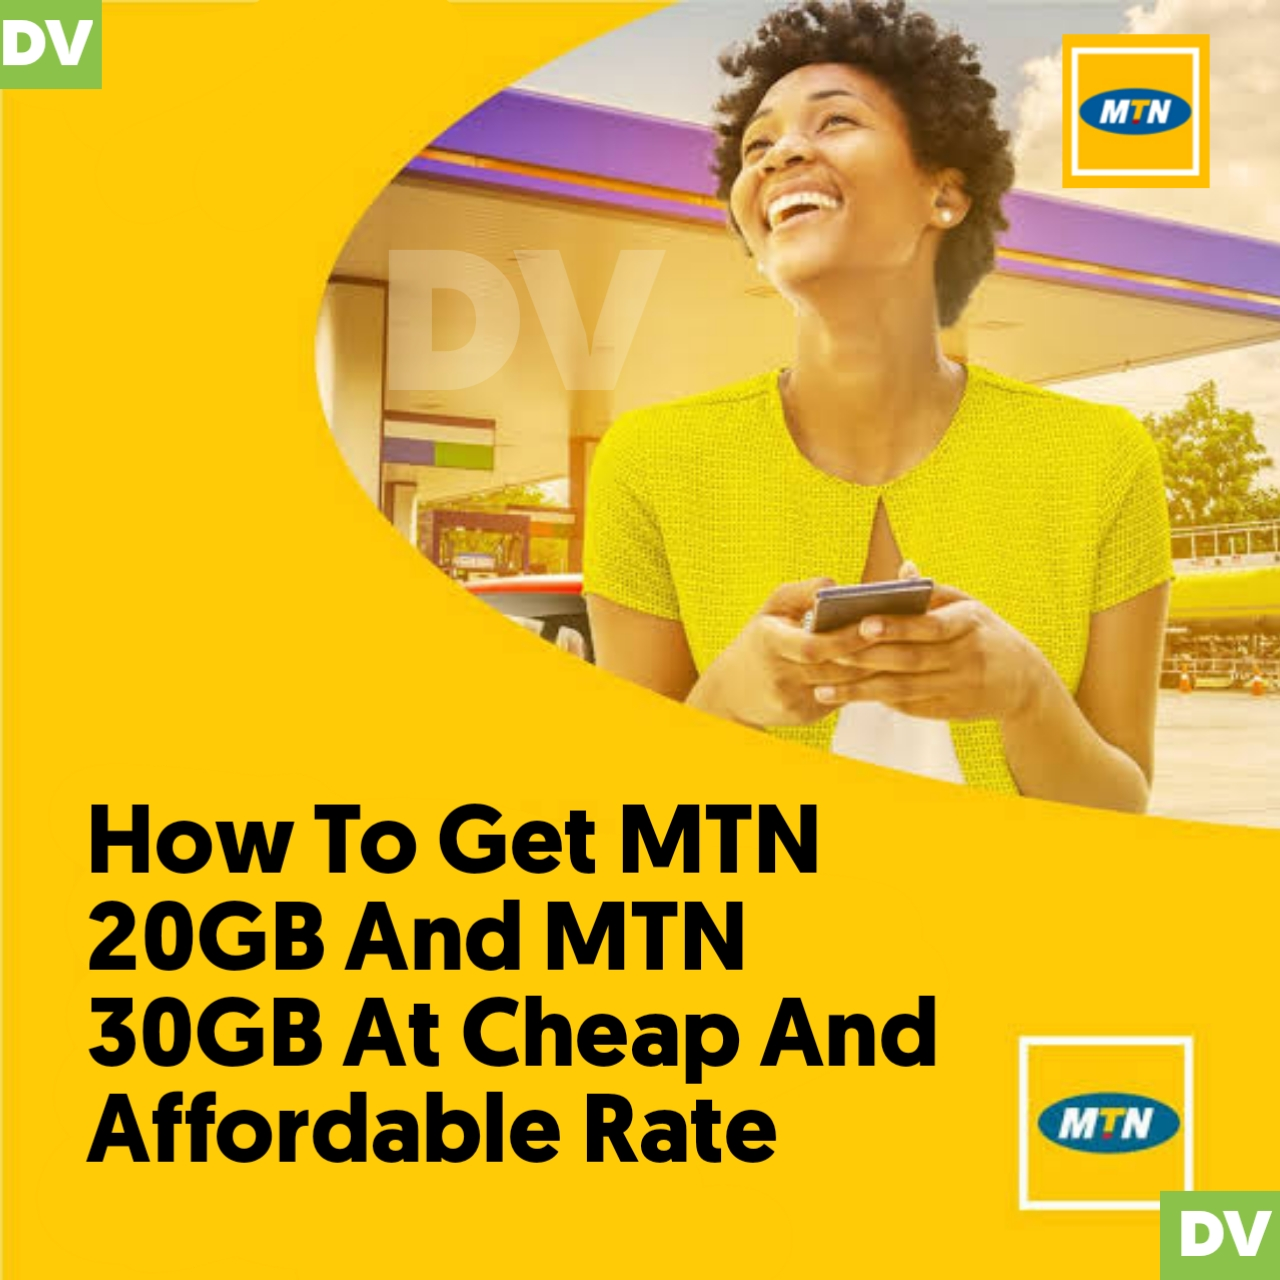 How To Get MTN 20GB And MTN 30GB At Cheap And Affordable Rate